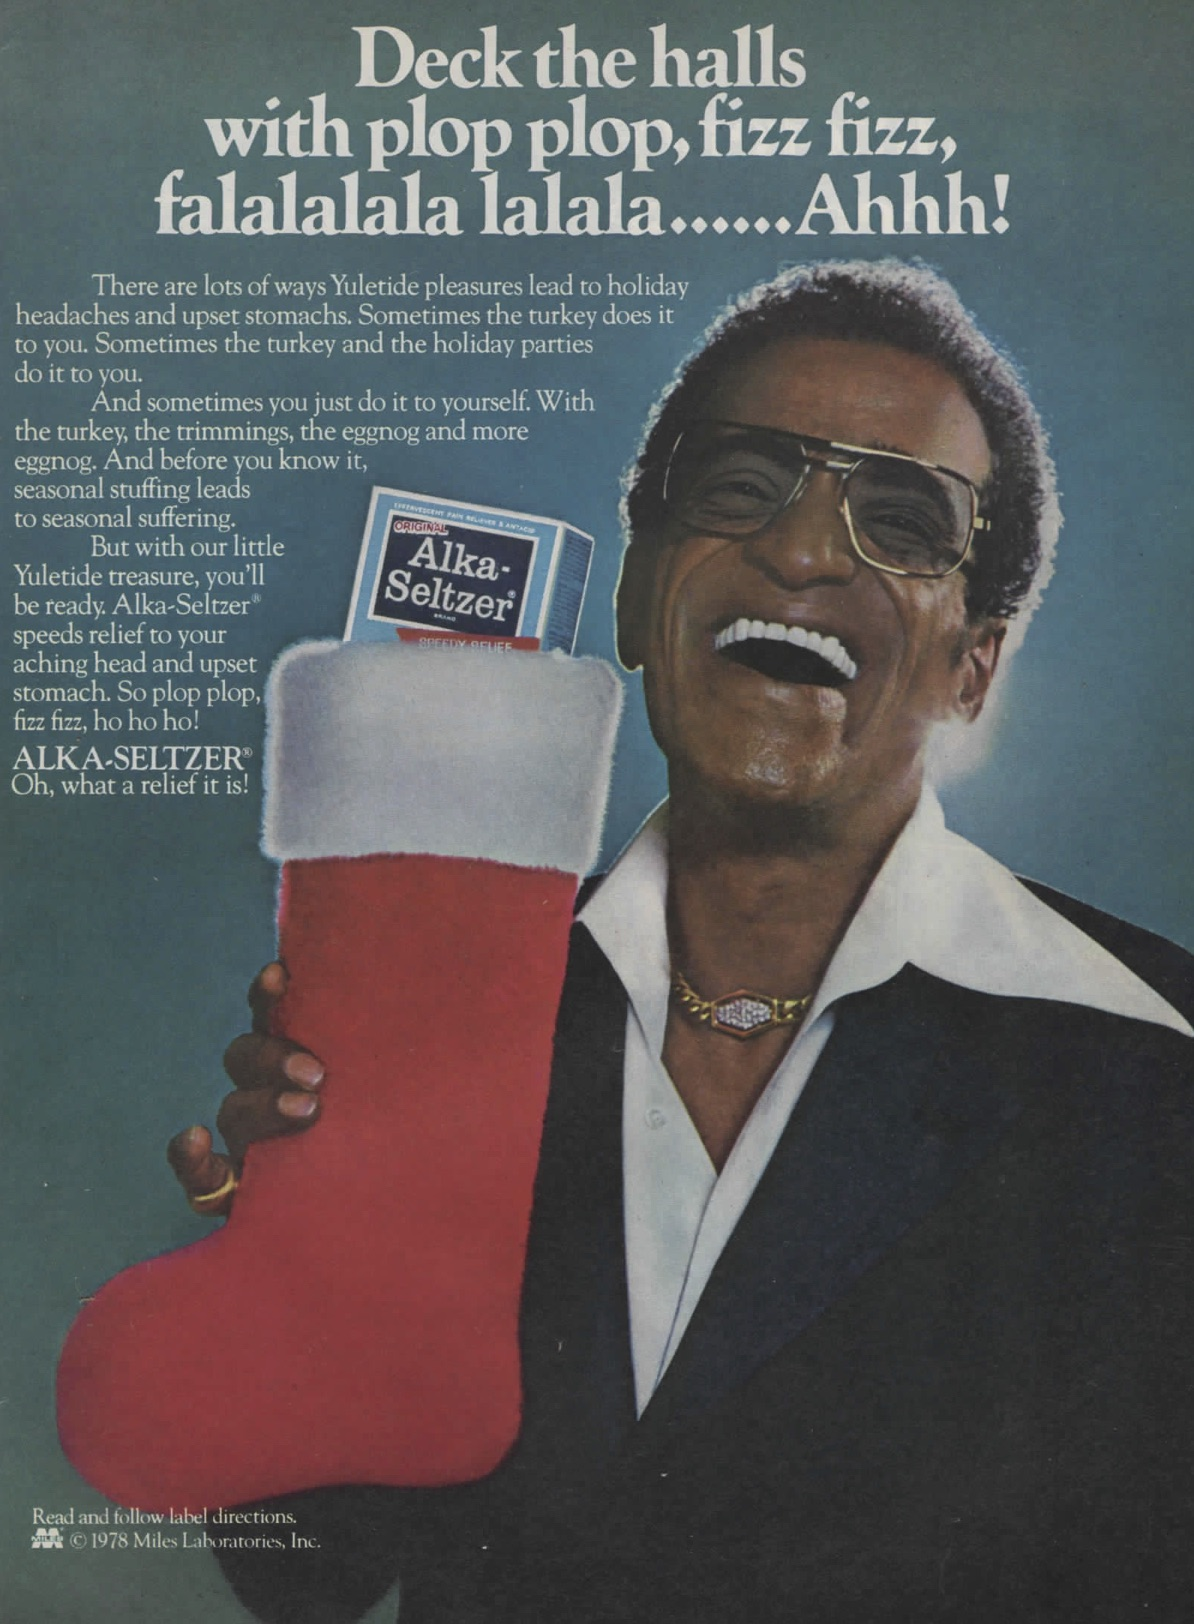 sammy davis jr in funny alka seltzer holiday ad